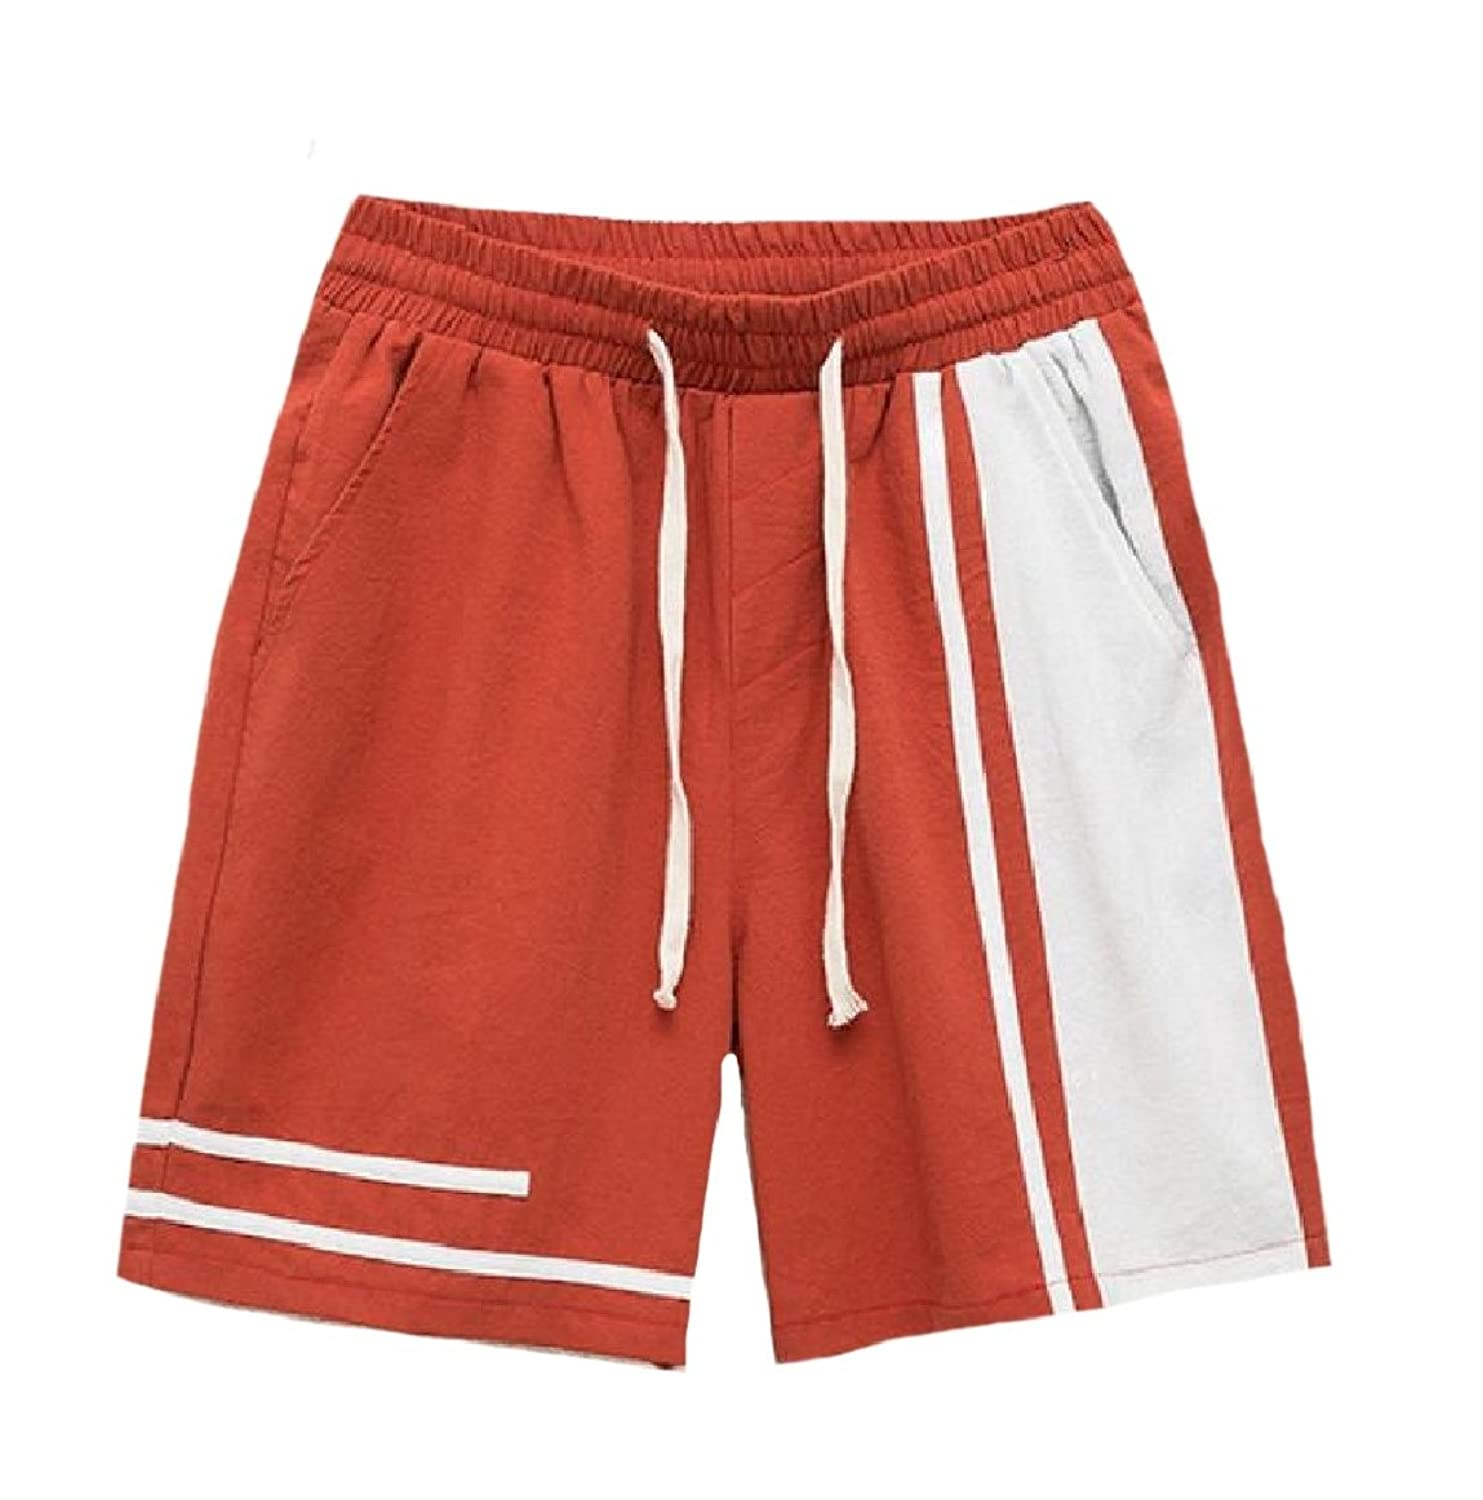 026ccbbcb2 Abetteric Mens Beach Leisure Elastic-Waist Straight Pants Lace-up Fitted  Baggy Comfy Spell